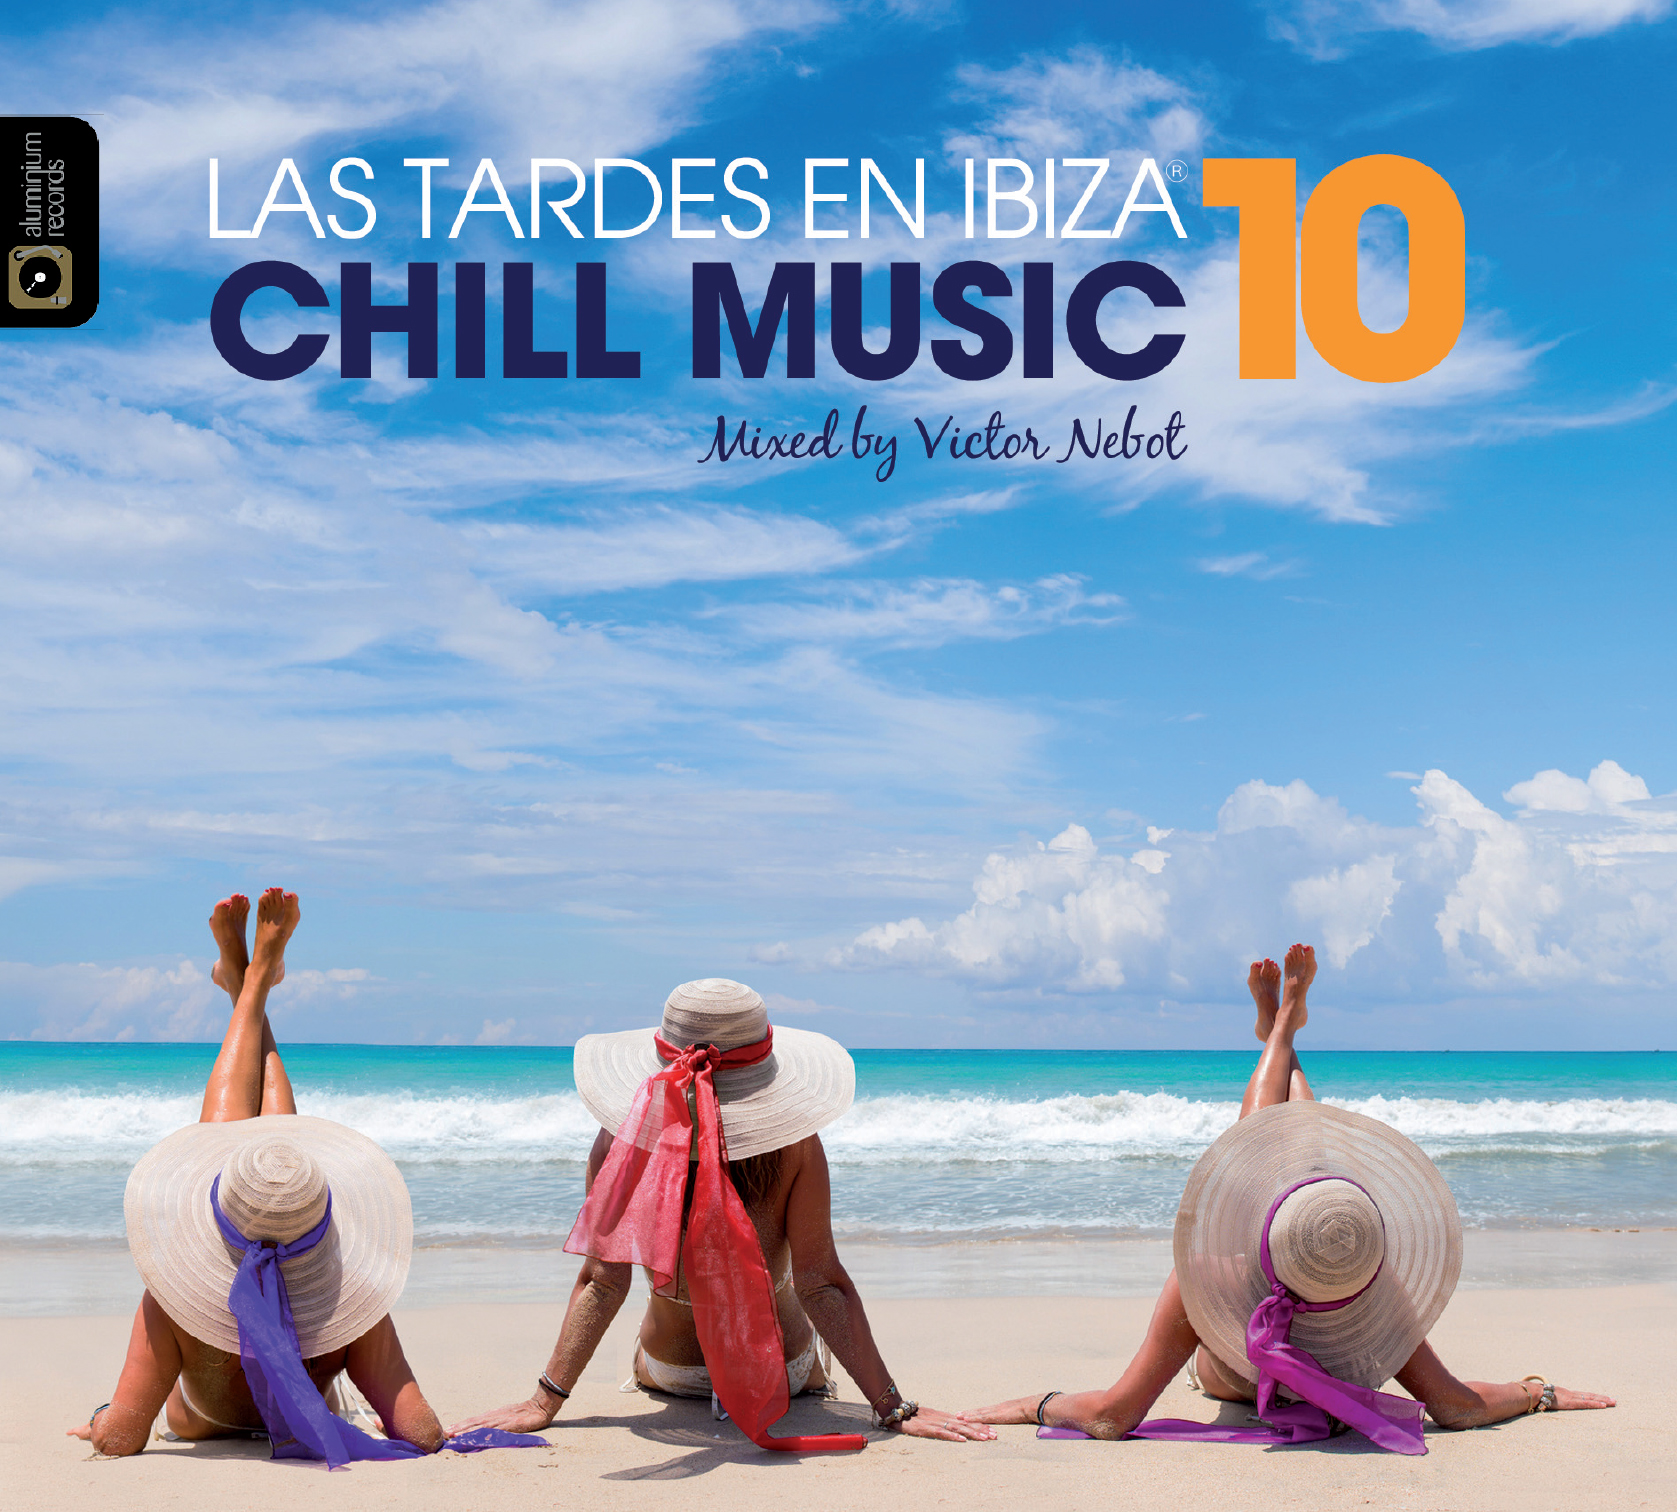 Las Tardes en Ibiza Chill Music Vol  10 by Victor Nebot